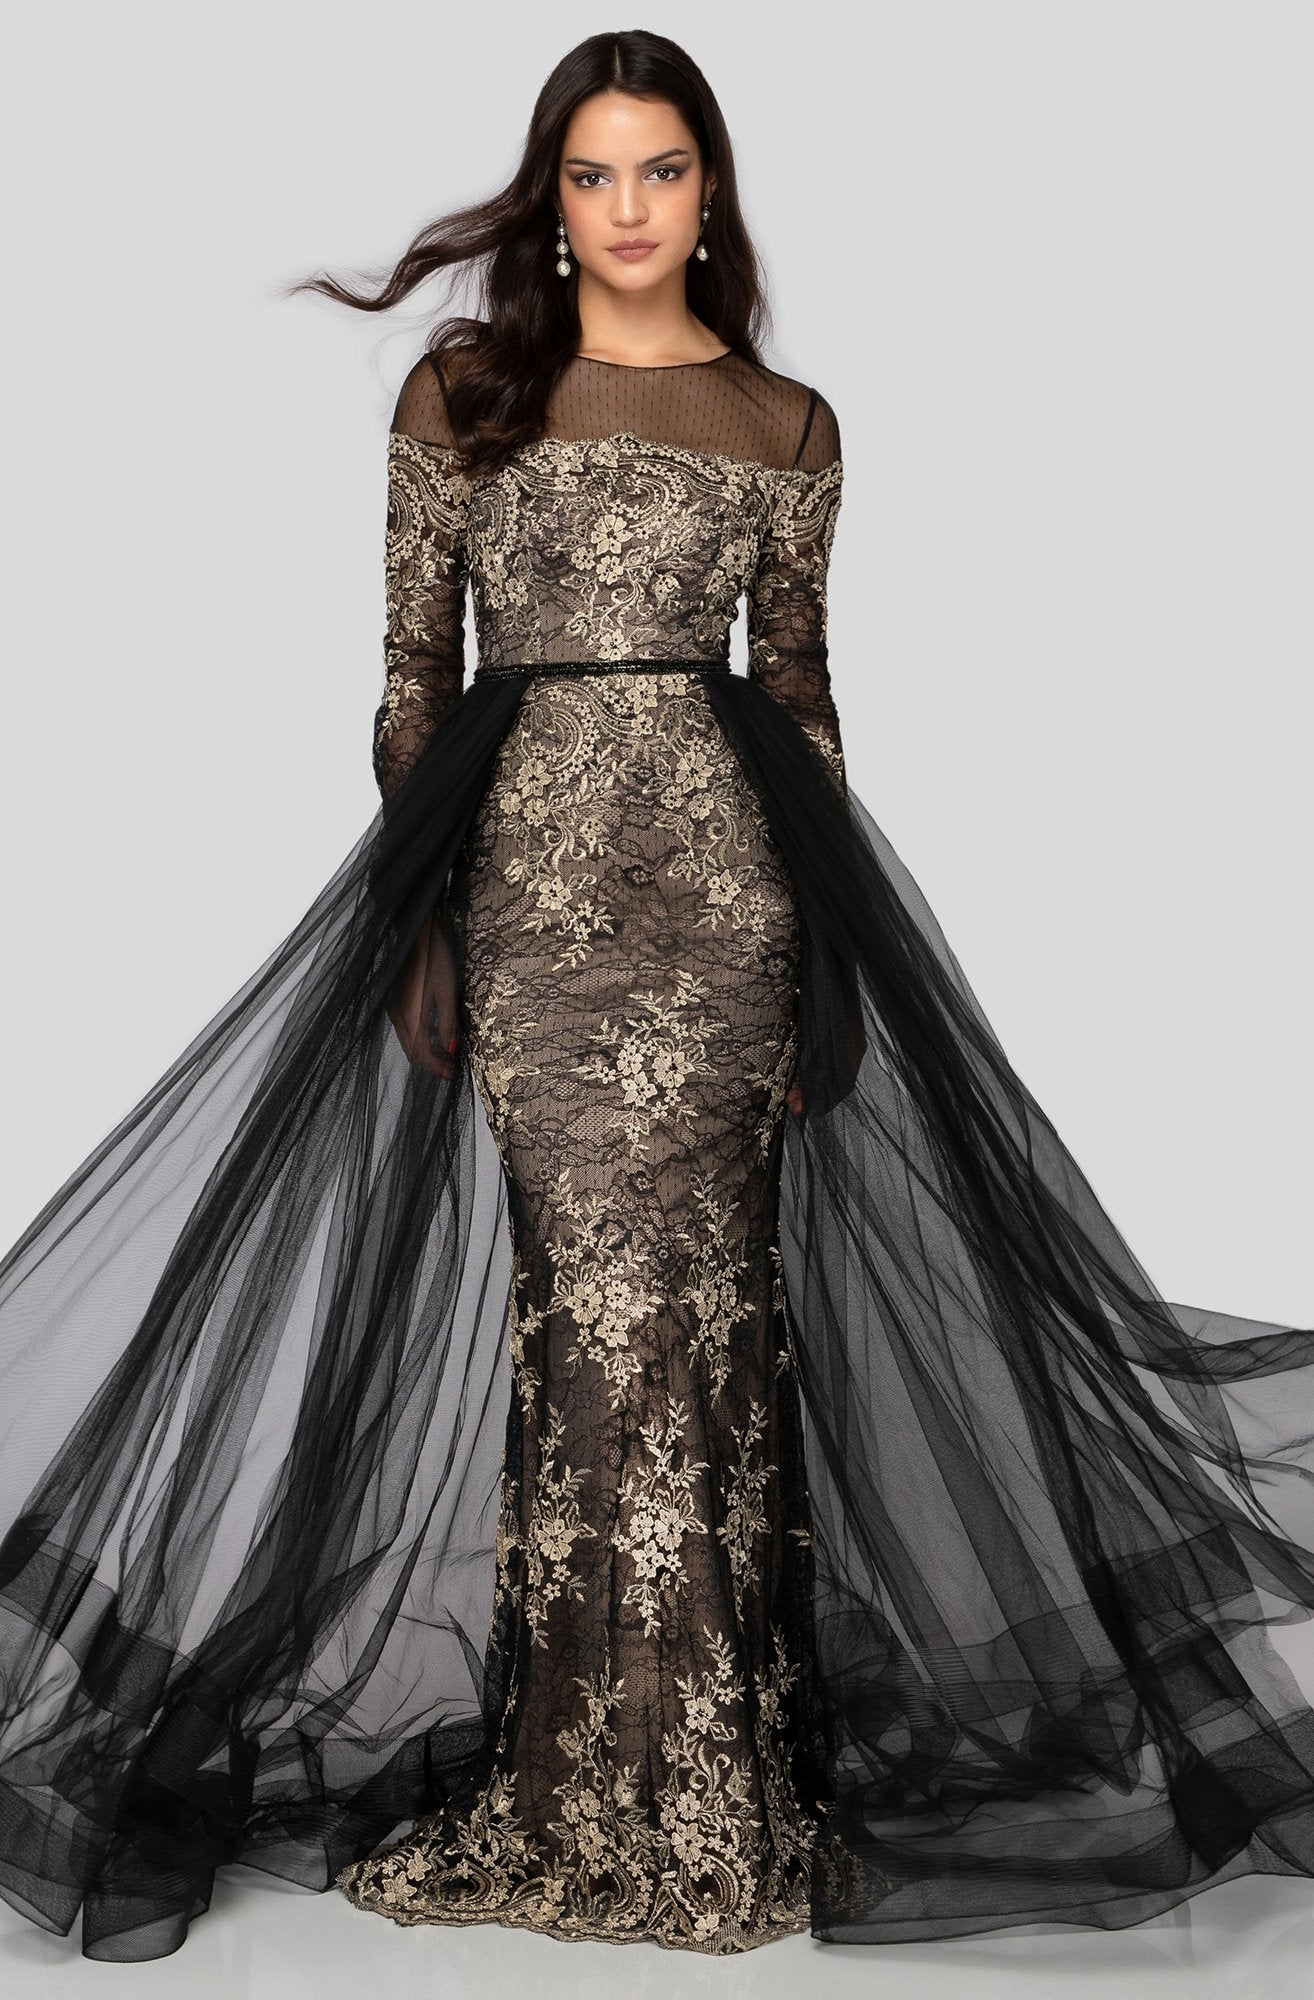 Terani Couture - 1913E9258 Lace Illusion Jewel Dress With Overskirt In Black and Gold